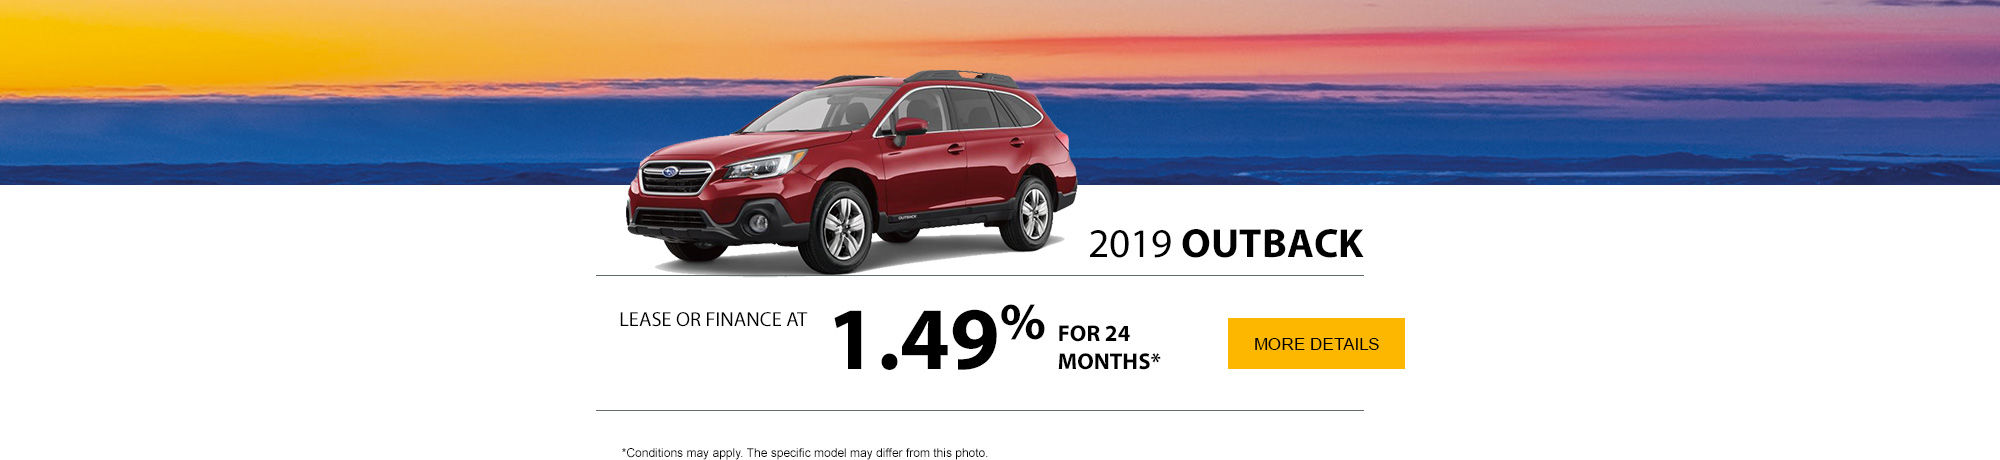 GET THE 2019 OUTBACK TODAY!